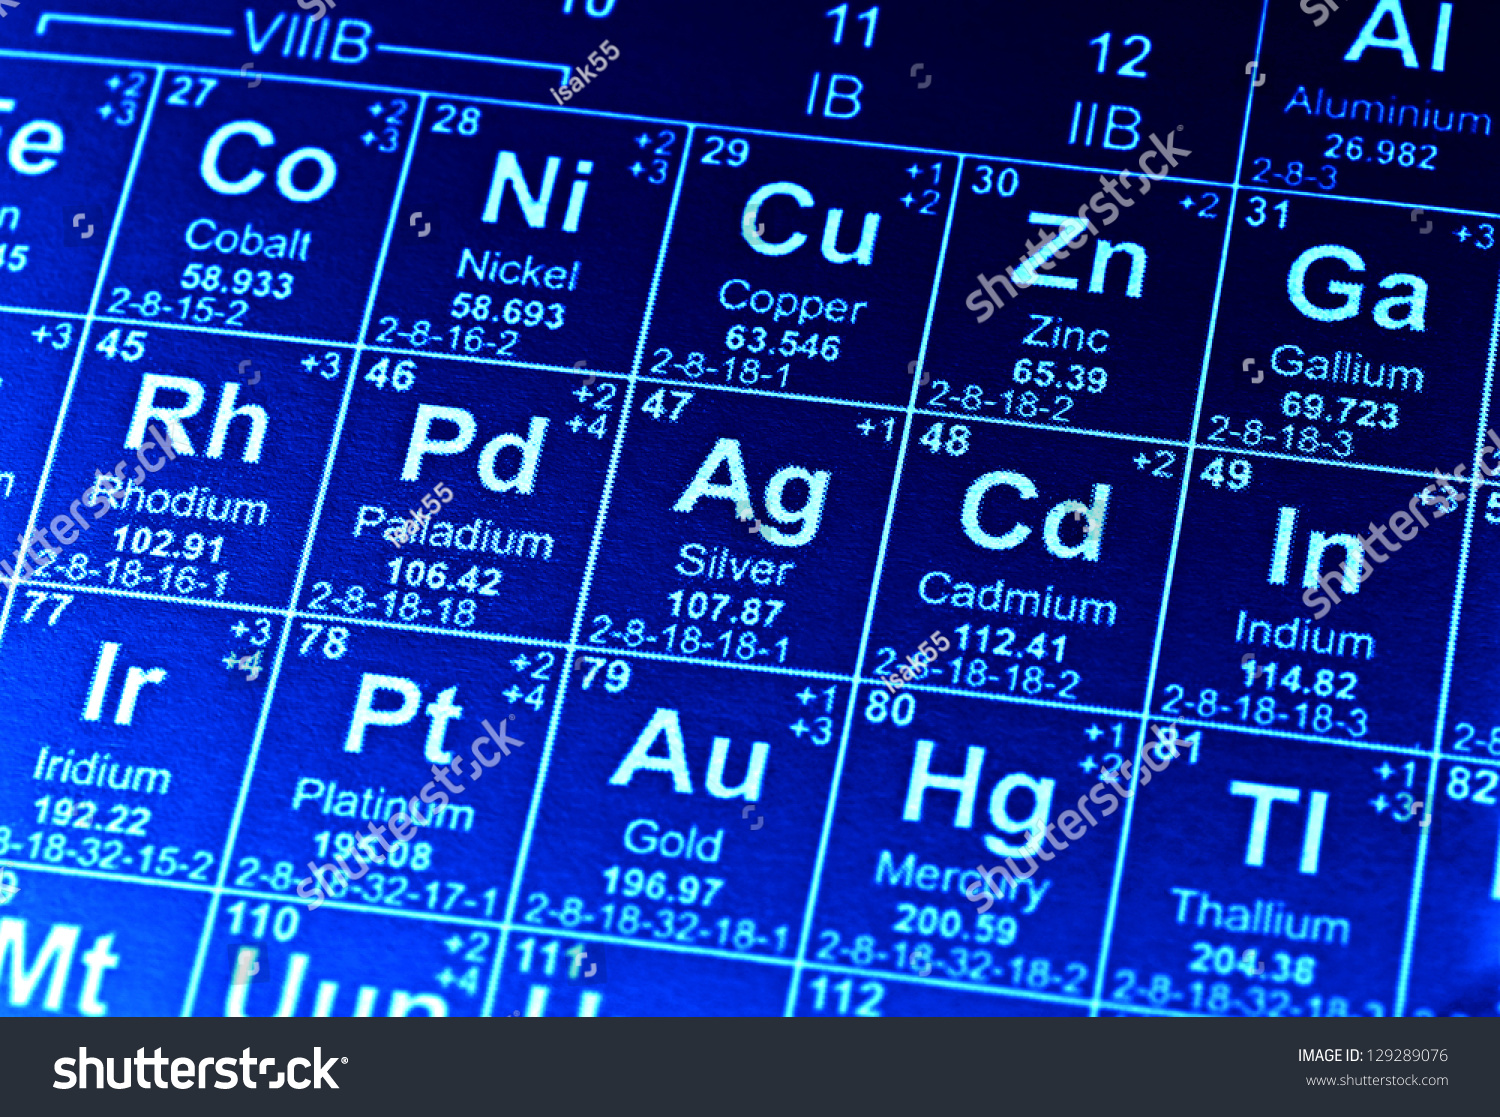 Periodic table elements selective focus stock photo 129289076 periodic table of elements selective focus gamestrikefo Images